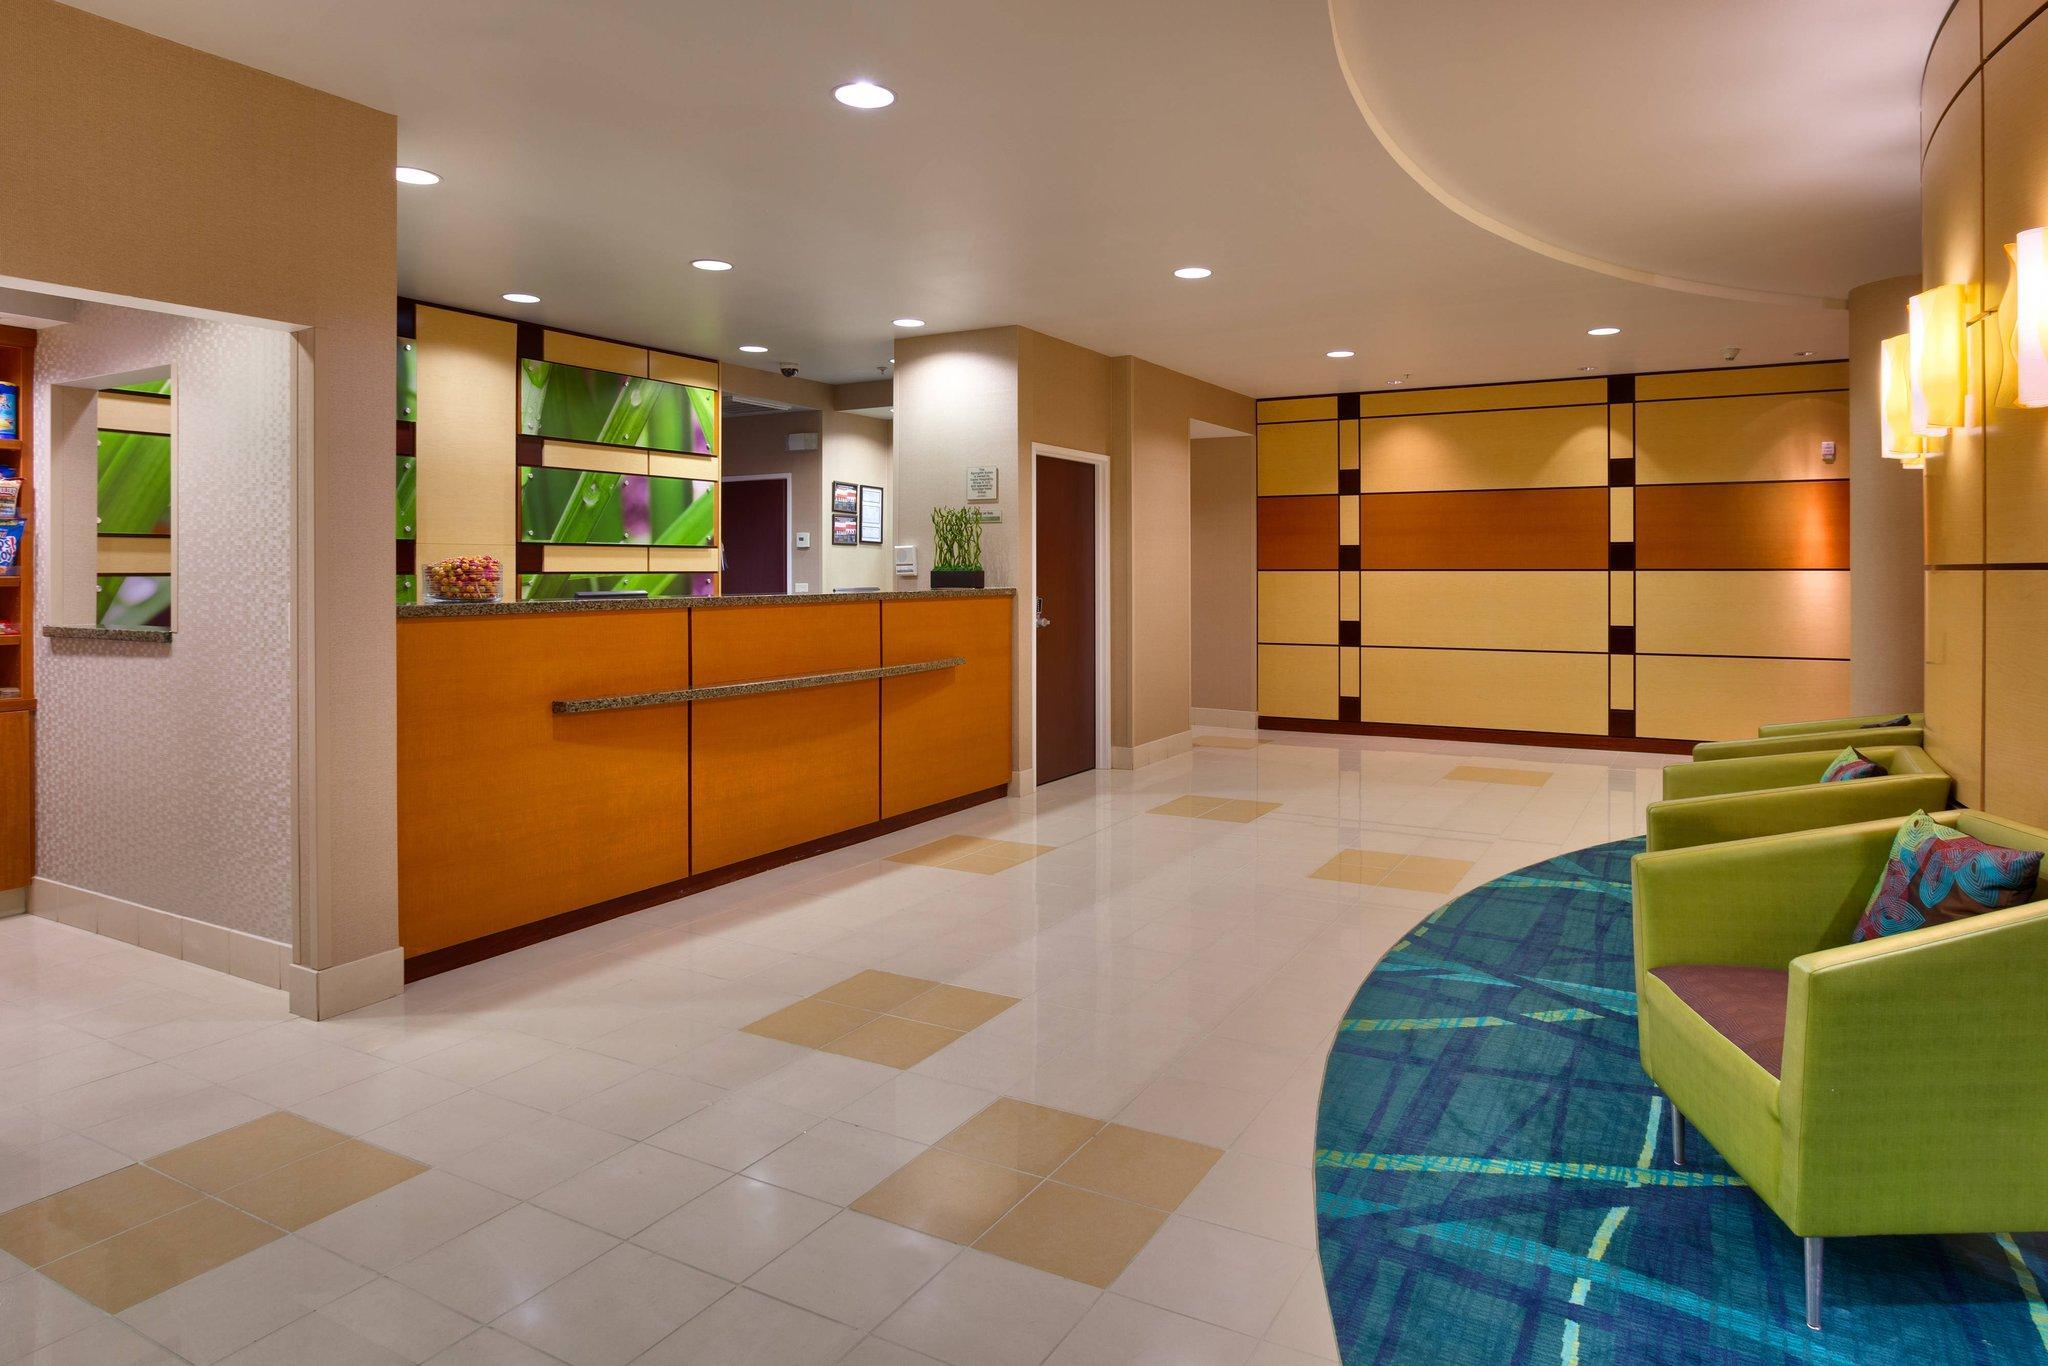 SpringHill Suites Cedar City, Iron